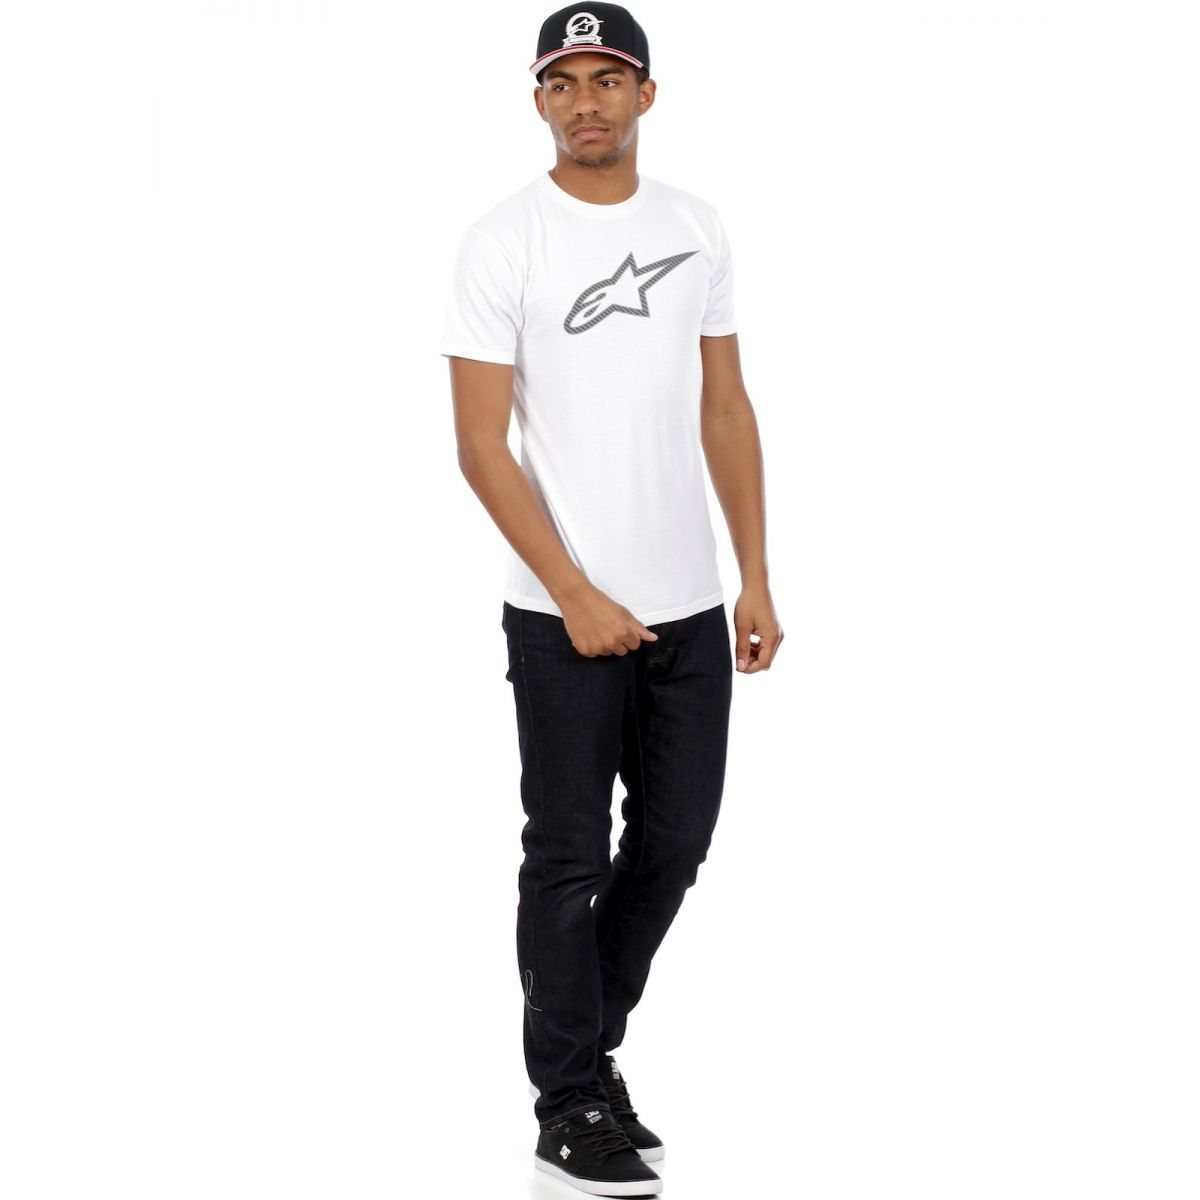 Camiseta Alpinestars Ageless Carbon White  - Super Bike - Loja Oficial Alpinestars